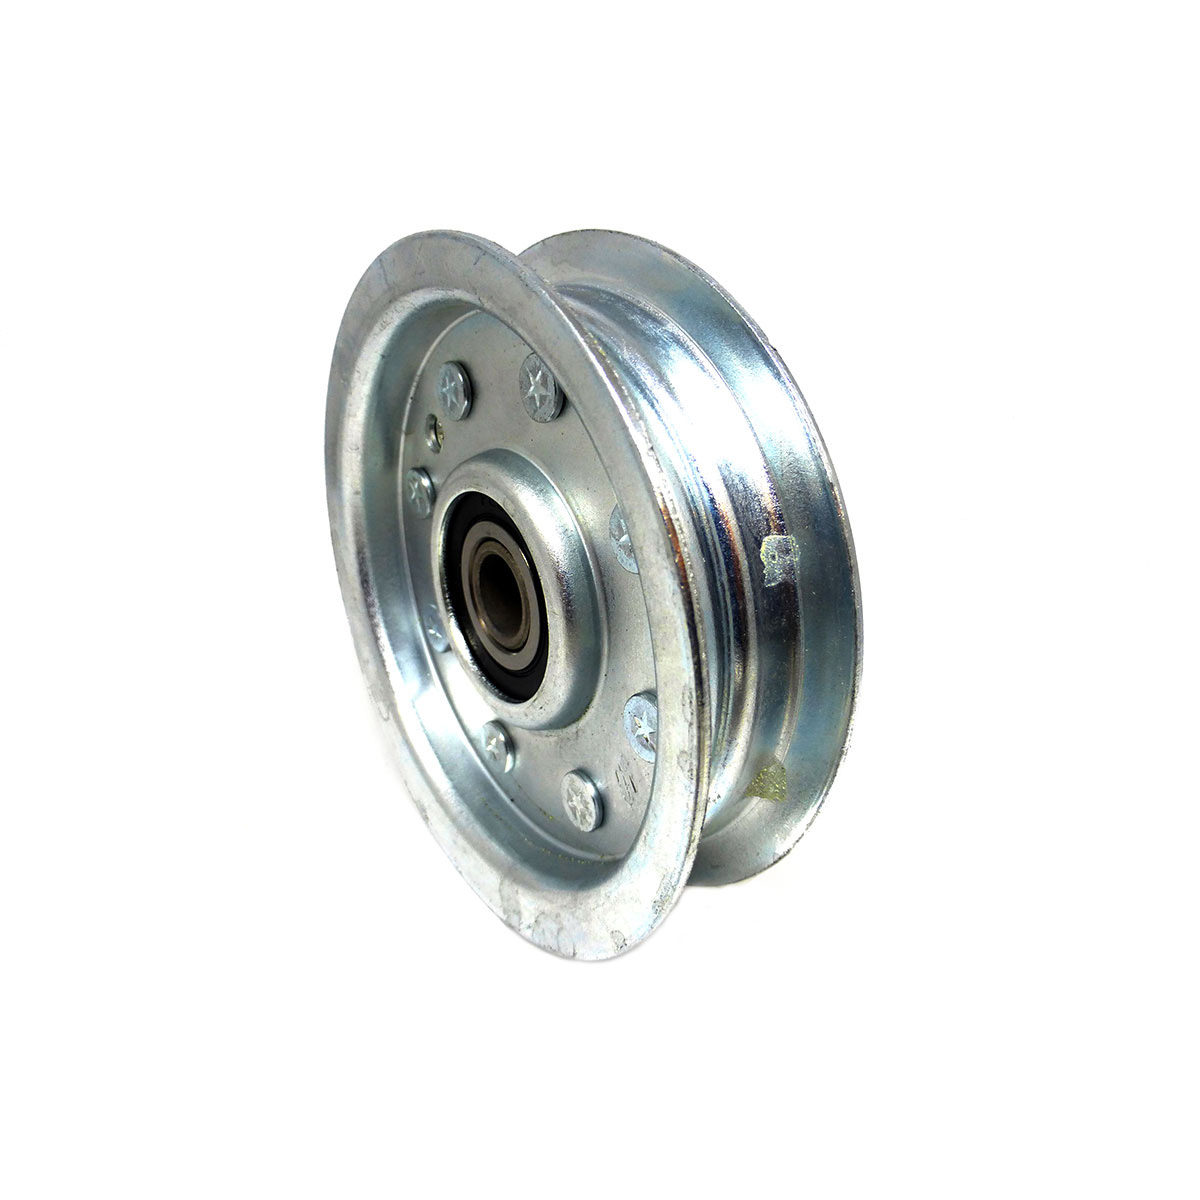 hight resolution of 200239 dixie chopper flat idler pulley w center hub 3 75